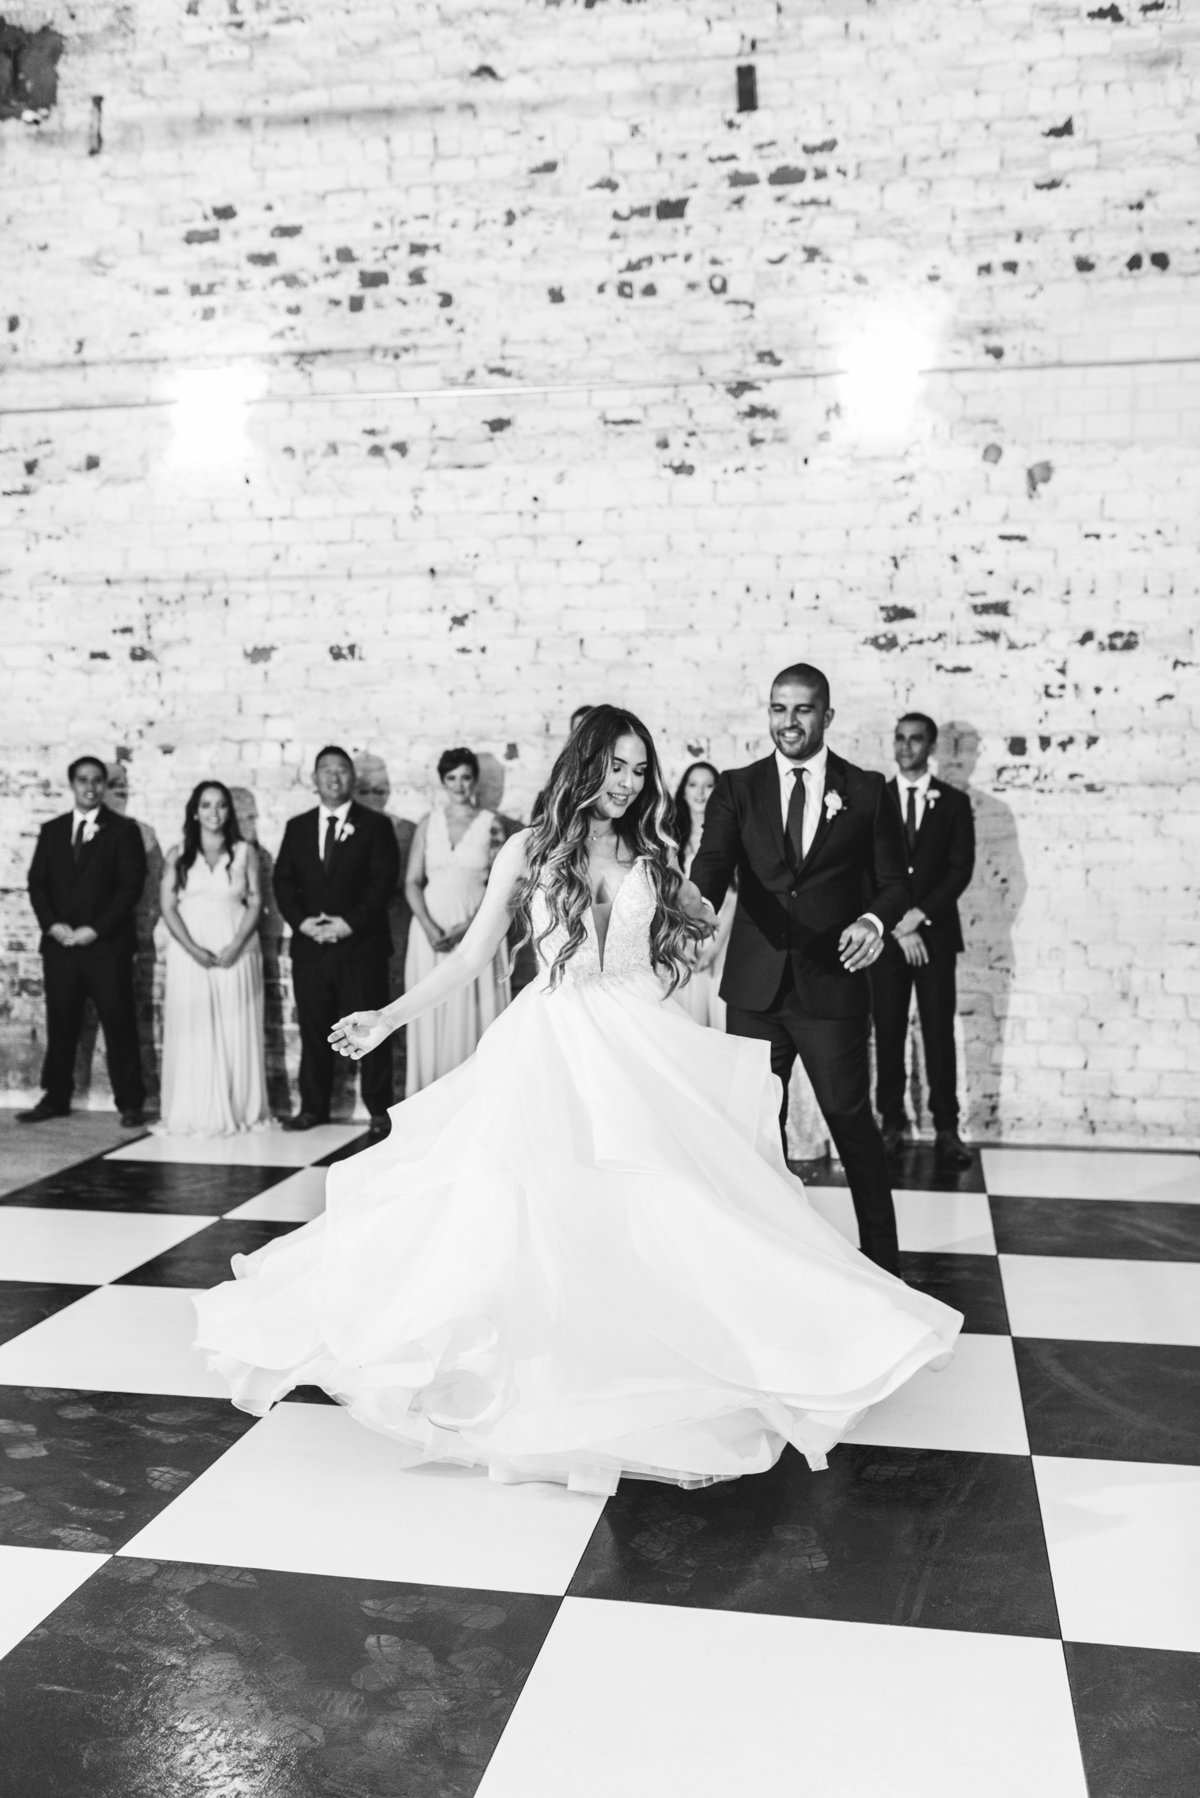 Bride and groom dancing on checkered dance floor smiling together